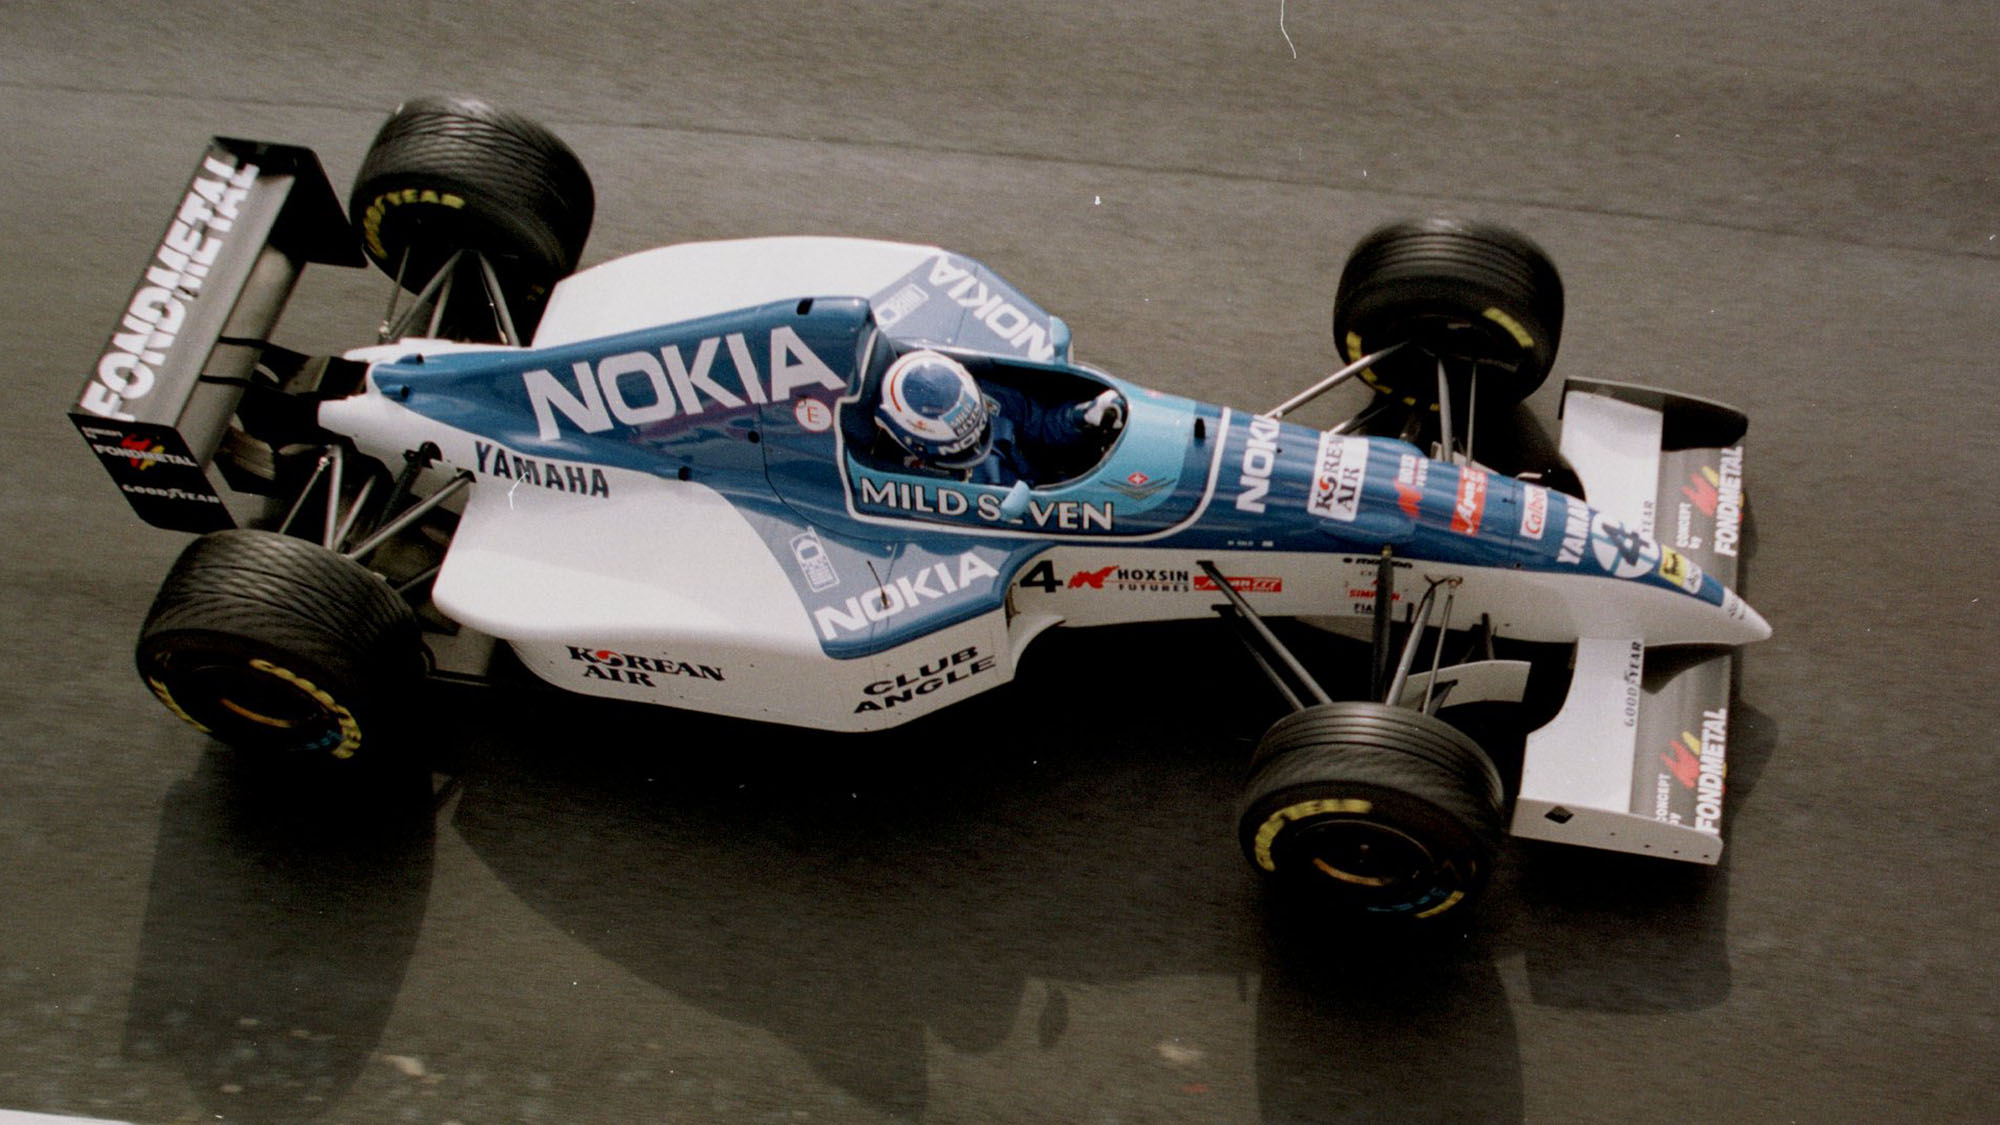 8th SEPT 1995: MIKA SALO OF FINLAND IN HIS TYRRELL AT PRACTICE FOR THE ITALIAN GRAND PRIX ,FORMULA ONE AT MONZA ,ITALY. Mandatory Credit: Mike Hewitt/ALLSPORT